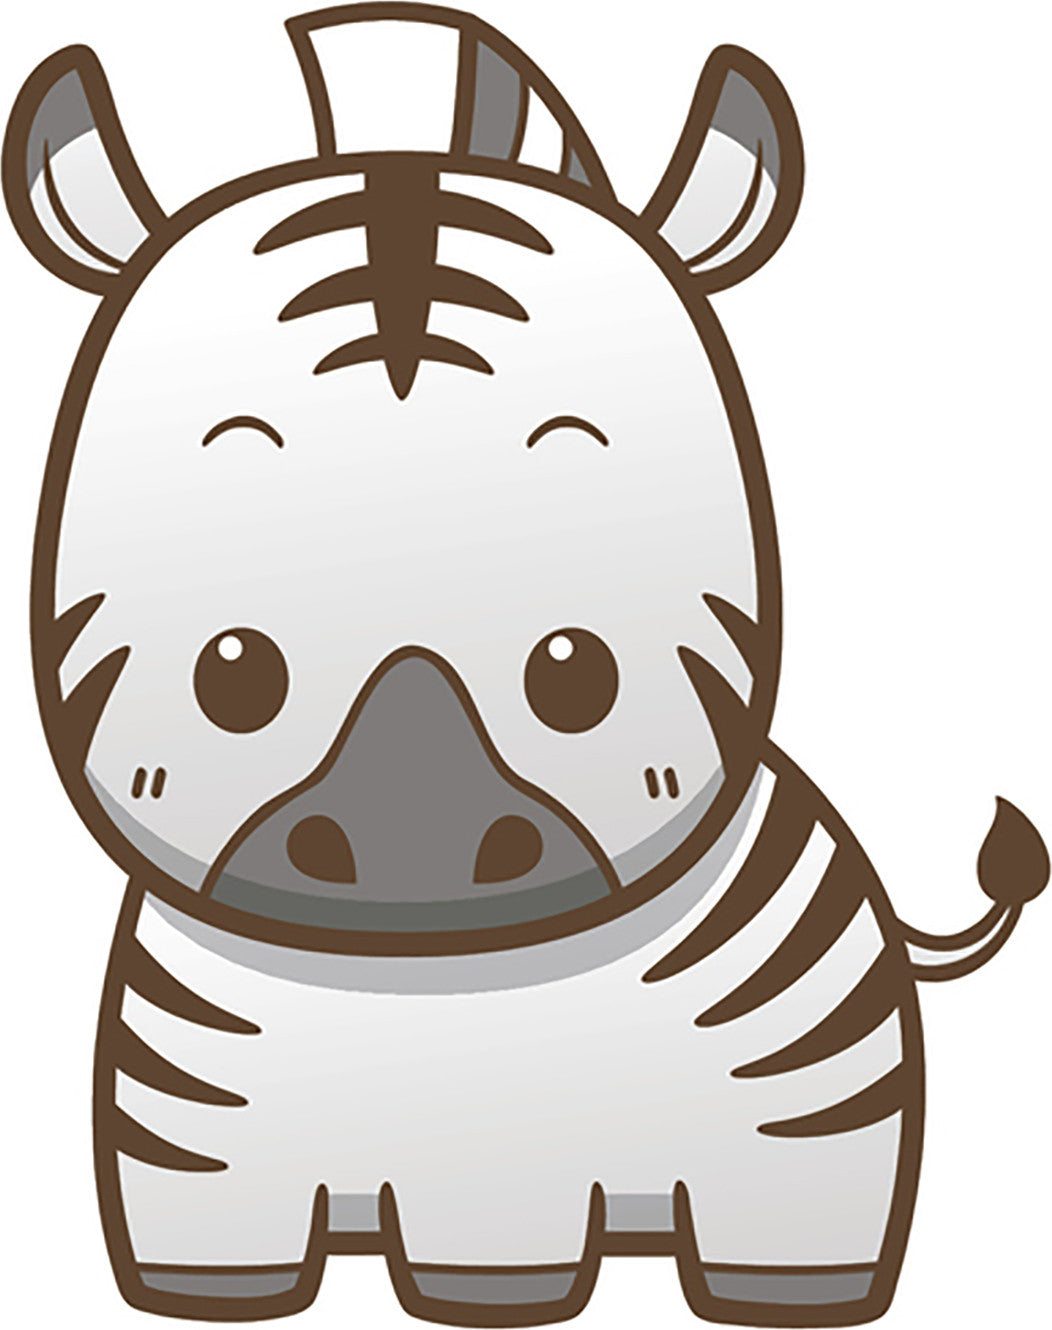 Cute Simple Kawaii Wild Animal Cartoon Icon - Zebra Vinyl Decal Sticker